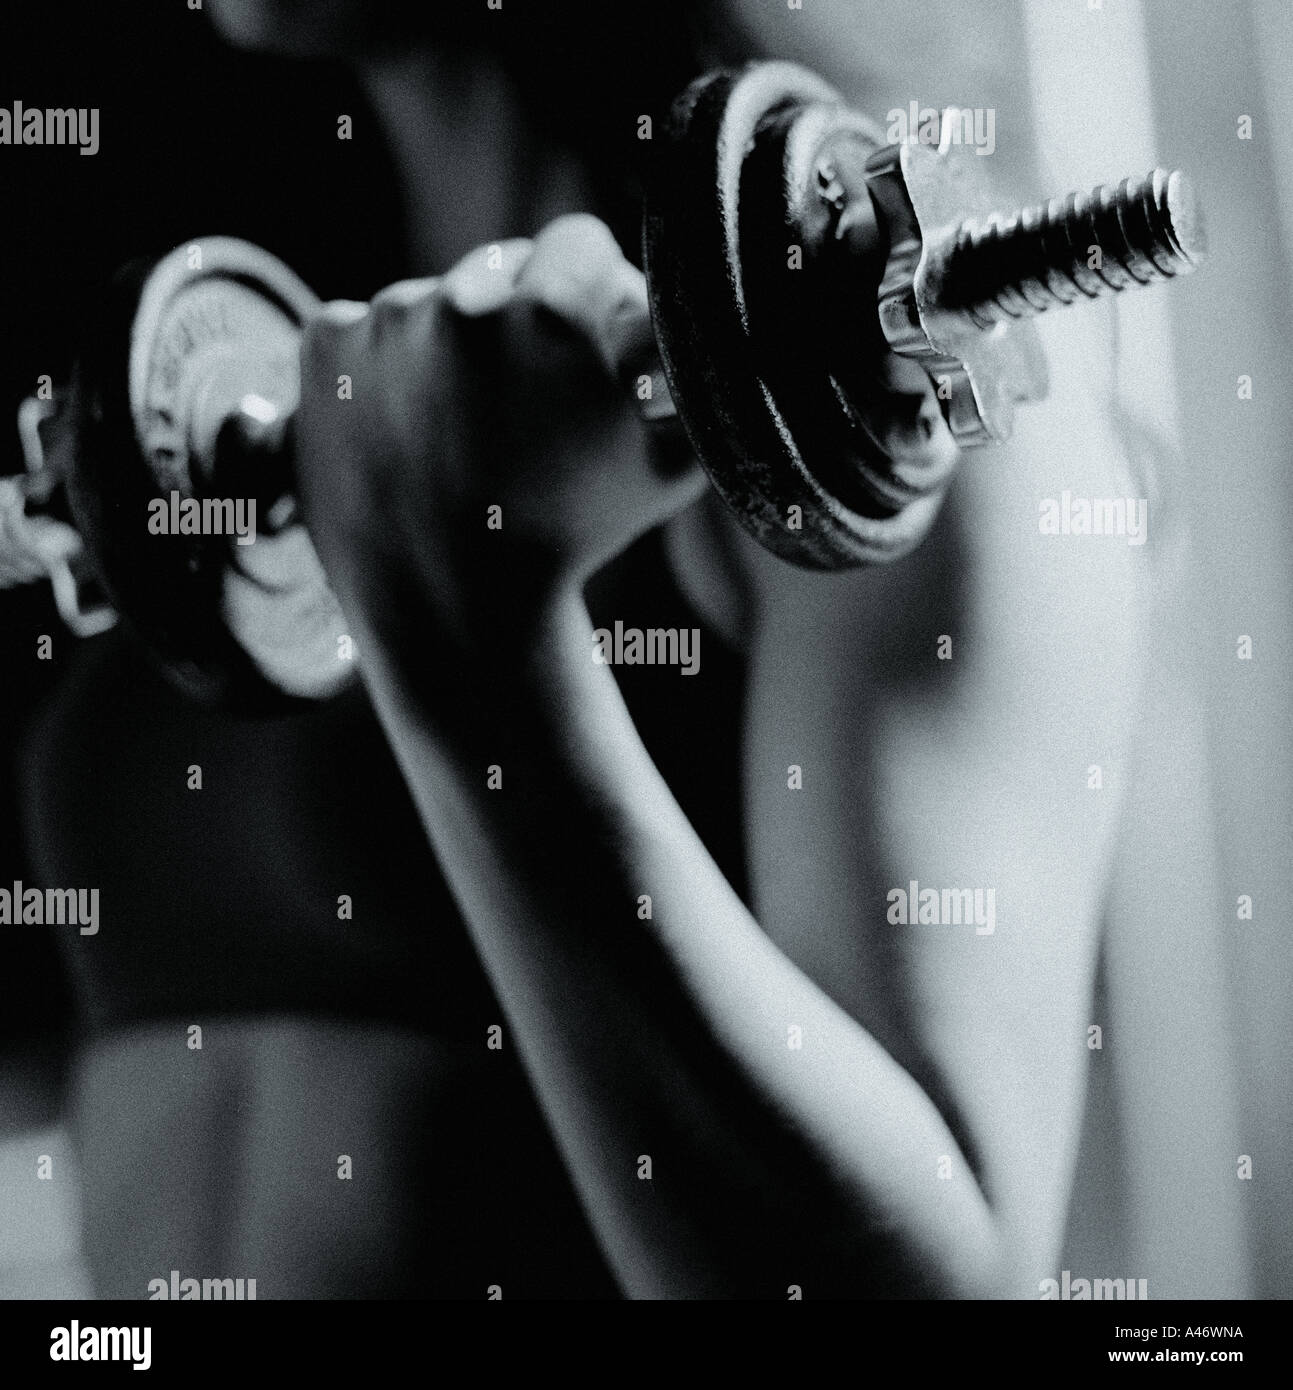 A woman pumping a barbell - Stock Image